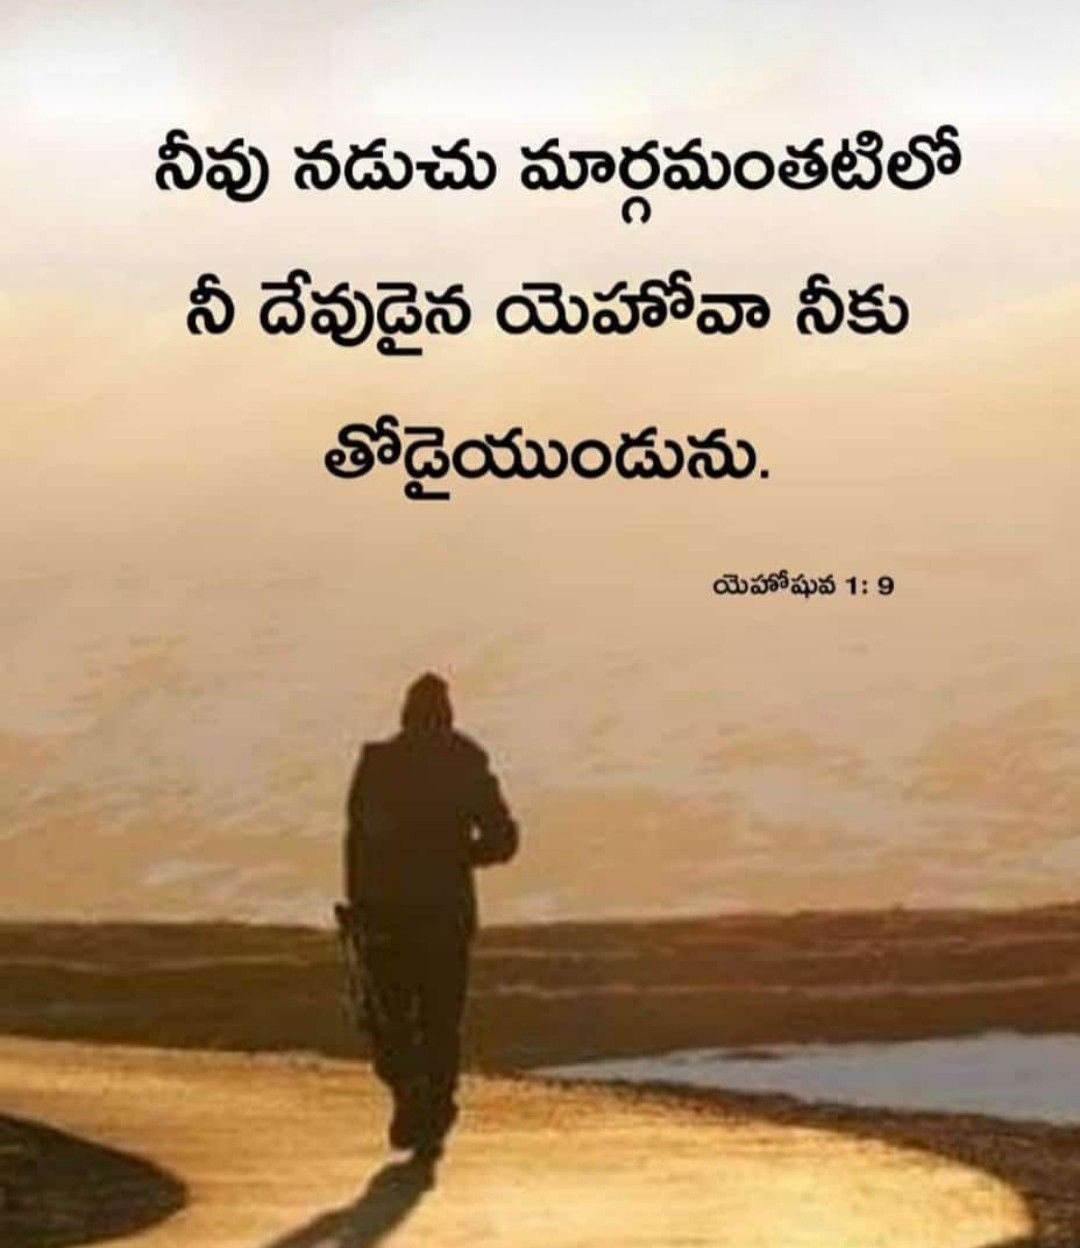 Happy birthday to you dear Siva  Bible quotes telugu, Bible